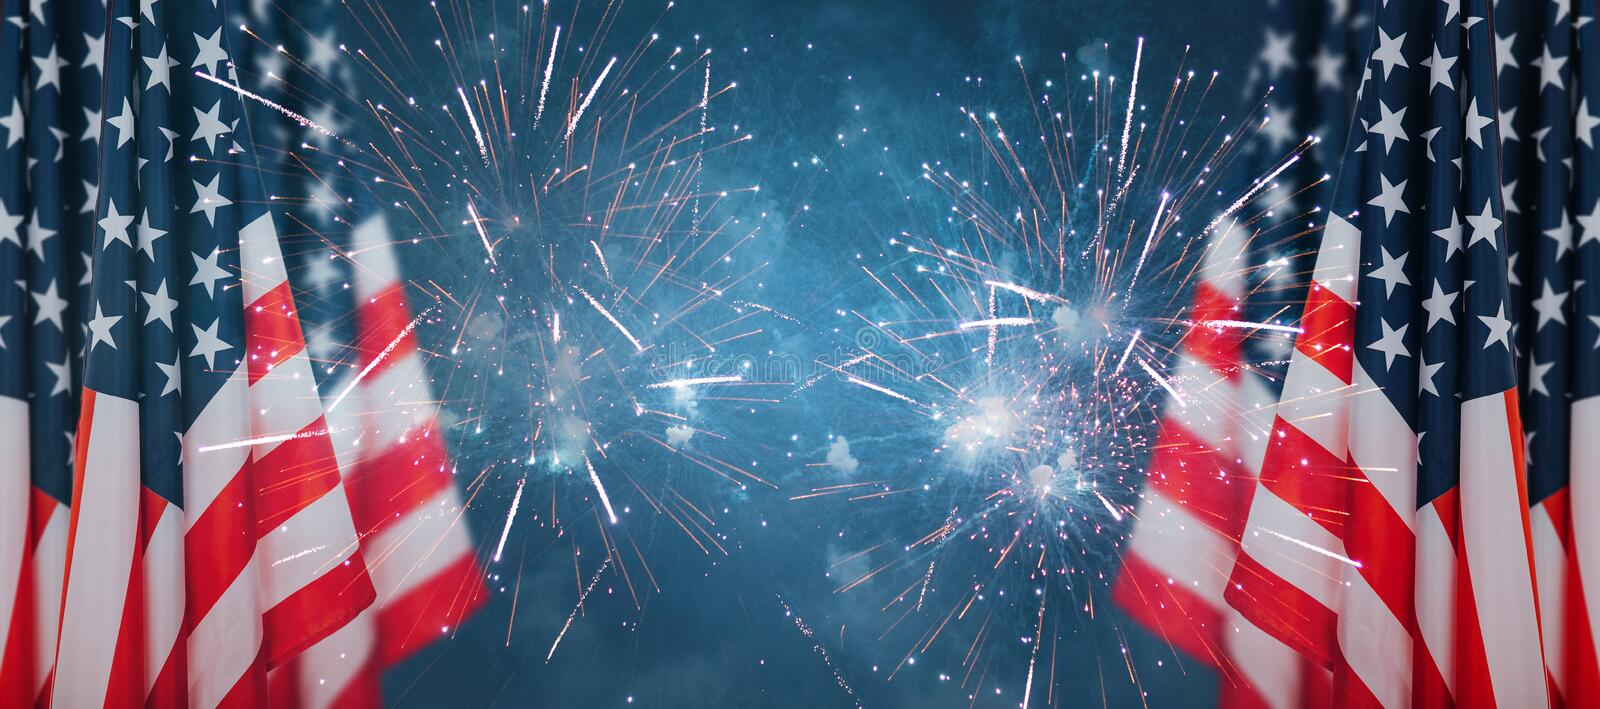 Celebration background for american holidays. American flag and fireworks royalty free stock photo